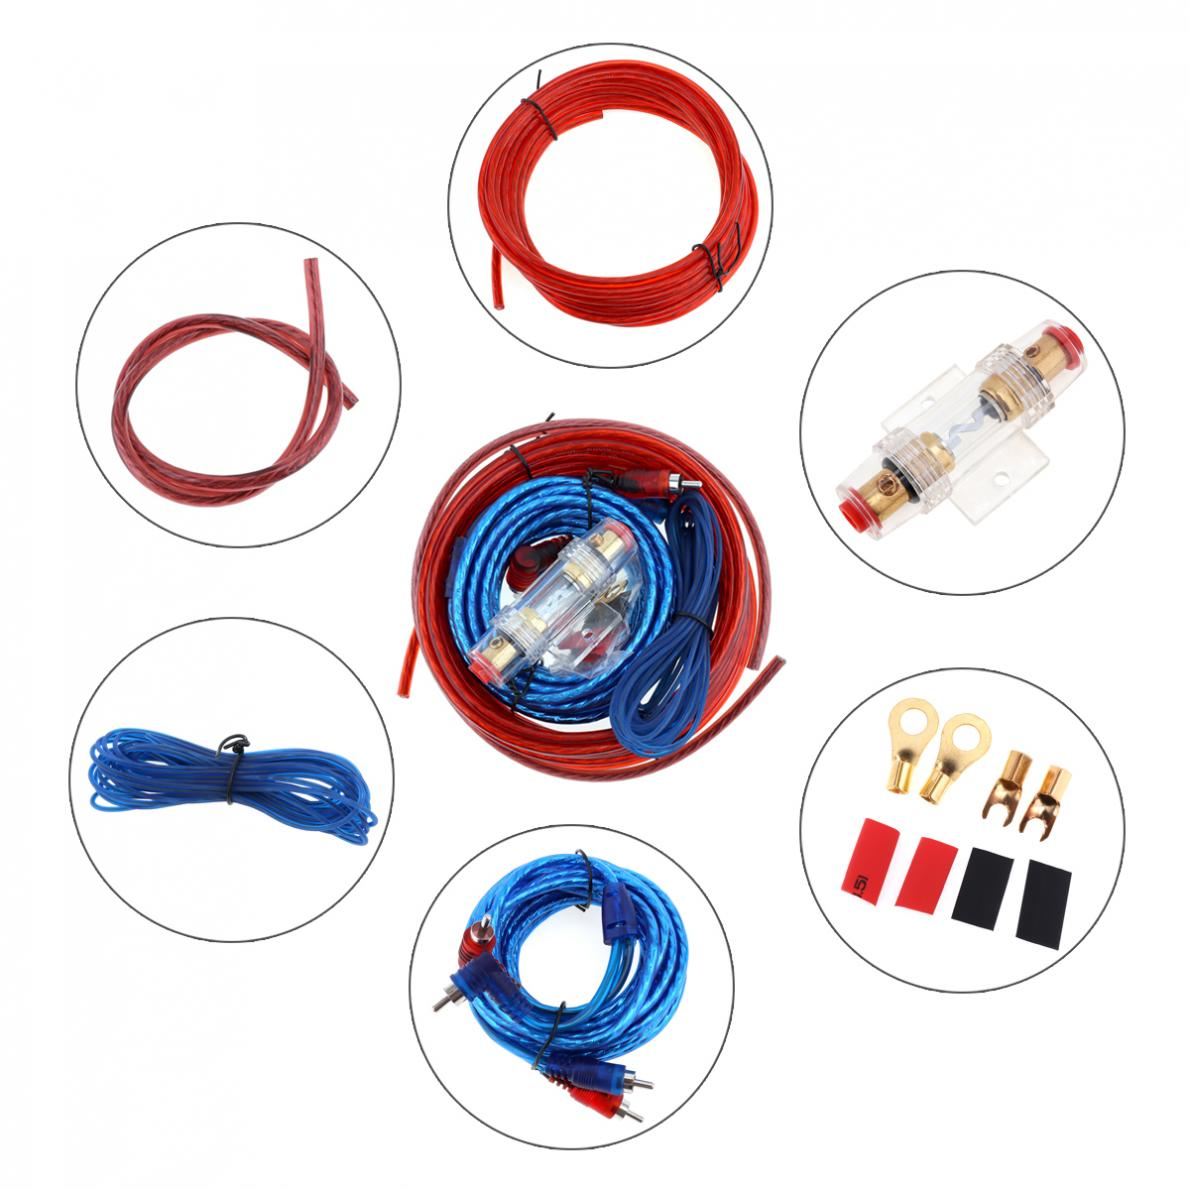 small resolution of car auto audio power amplifier car subwoofer speaker installation wiring kits cables car audio line power